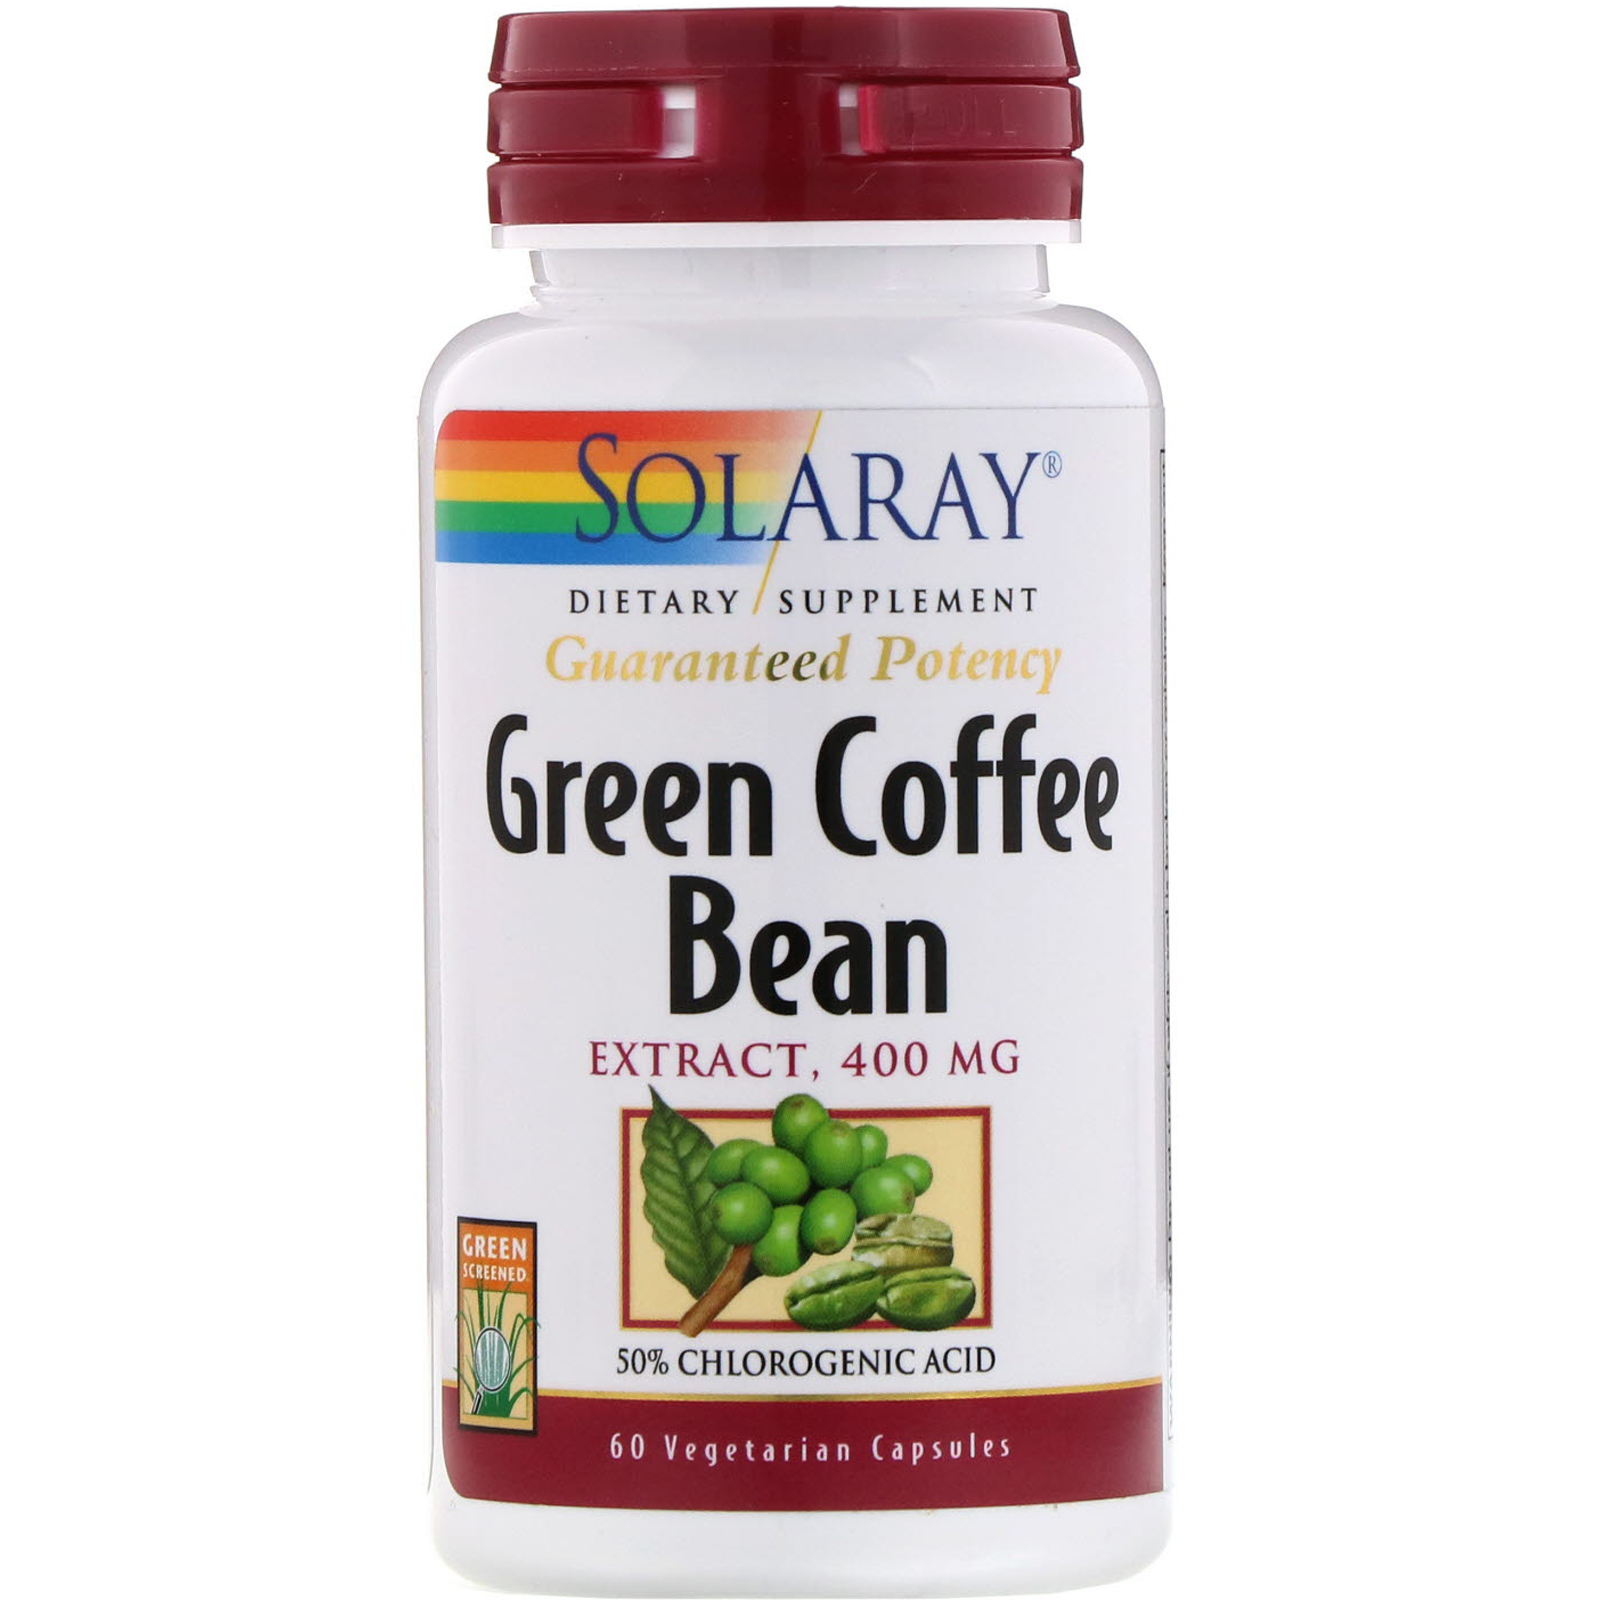 Solaray Green Coffee Bean Extract 400 Mg 60 Vegetarian Capsules Iherb